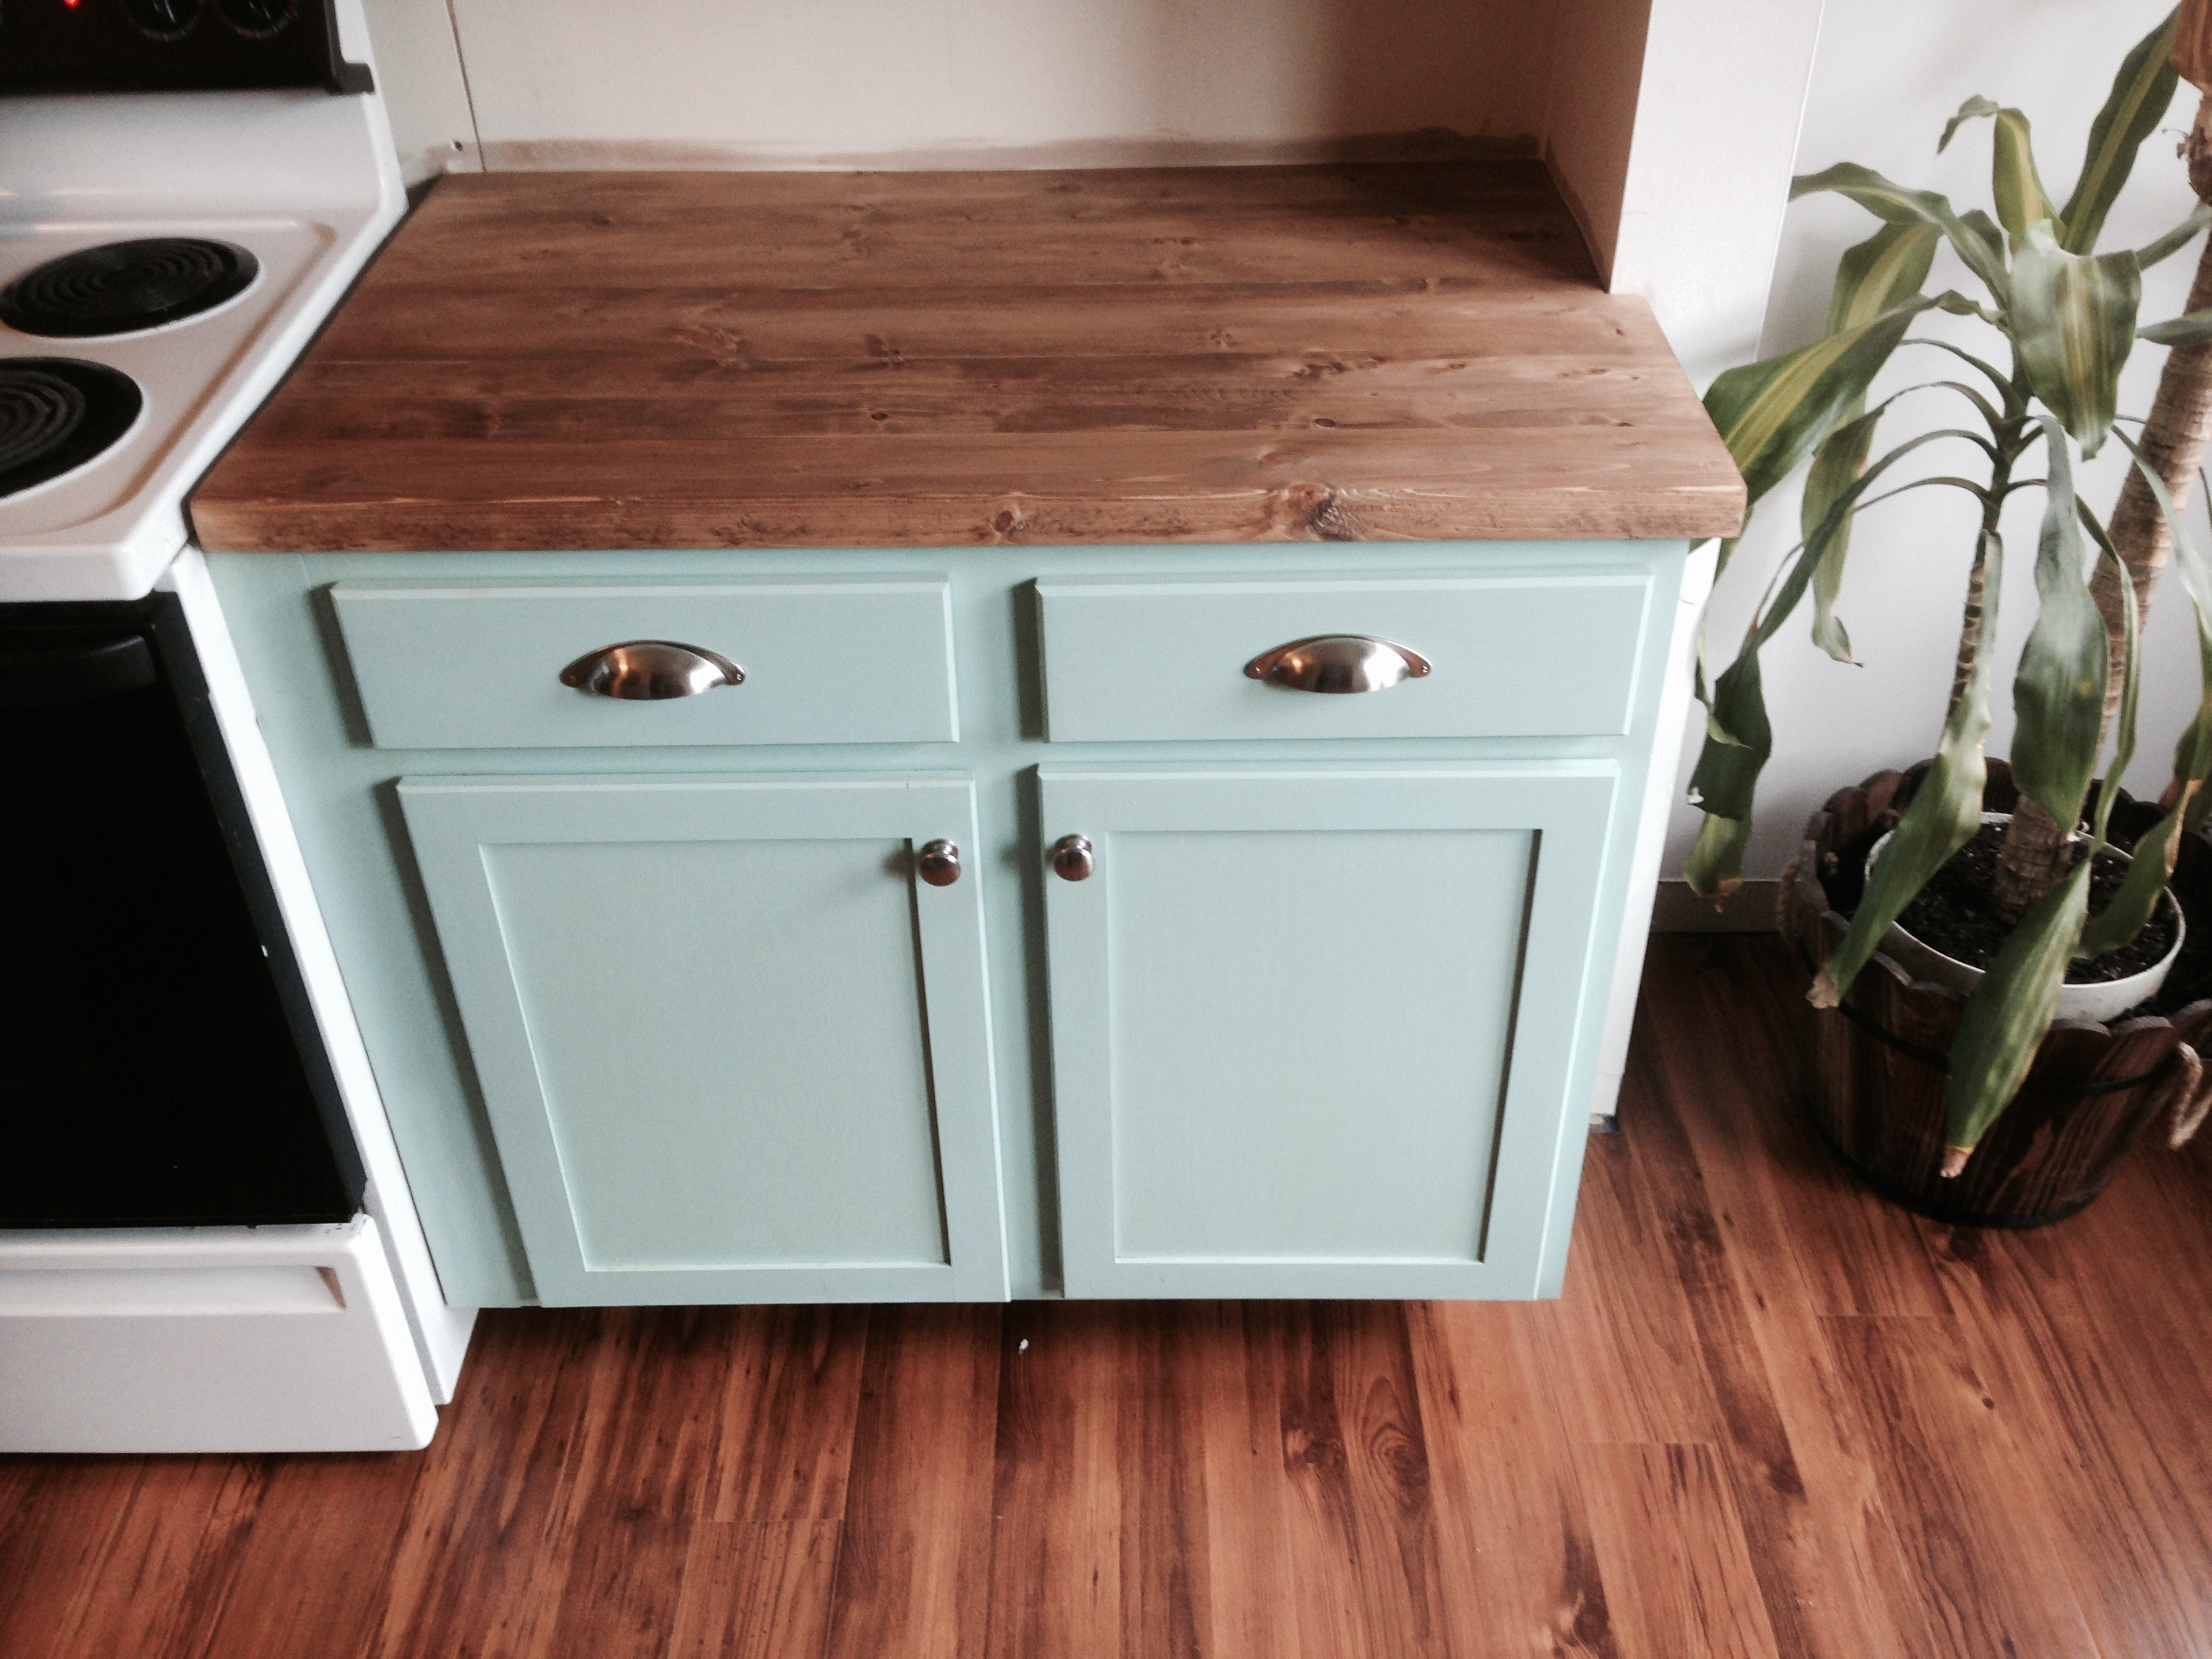 Unfinished Cabinets: Bland to Glam - For Less! • Builders Surplus